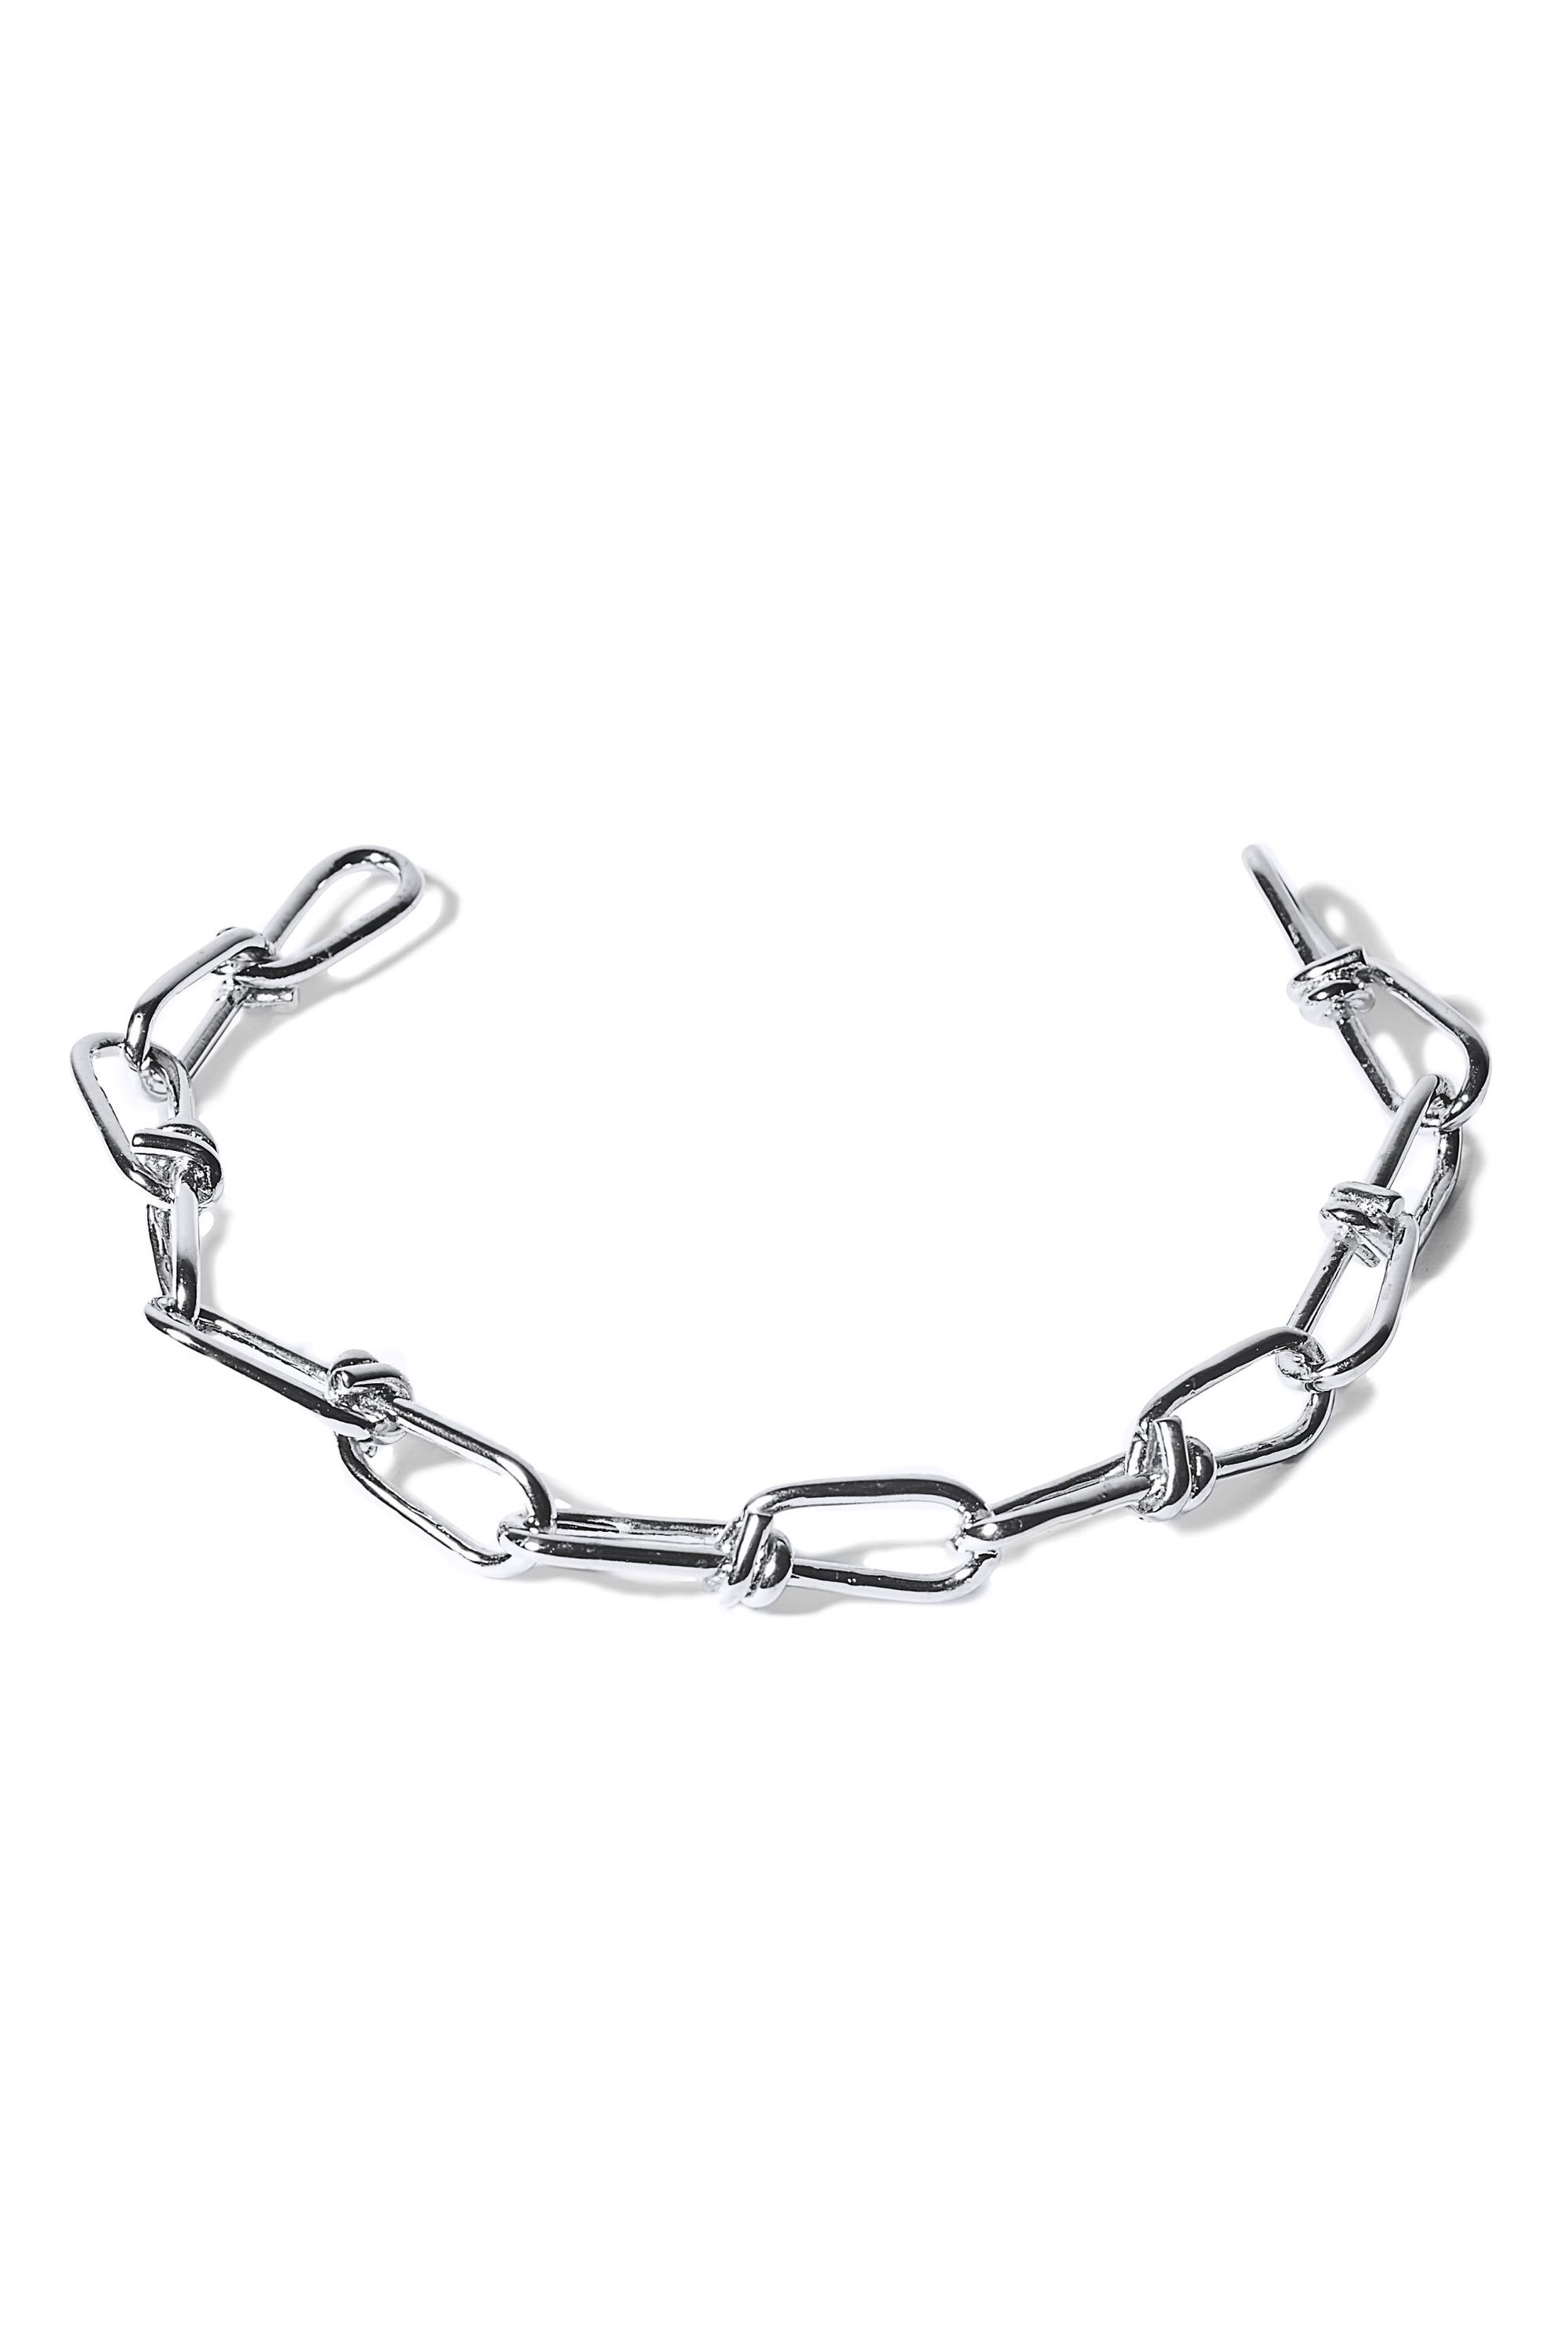 "<p>Annelise Michelson Wire Choker, €500; <a href=""http://www.annelisemichelson.com/wire/choker"" target=""_blank"">annelisemichelson.com</a></p>"